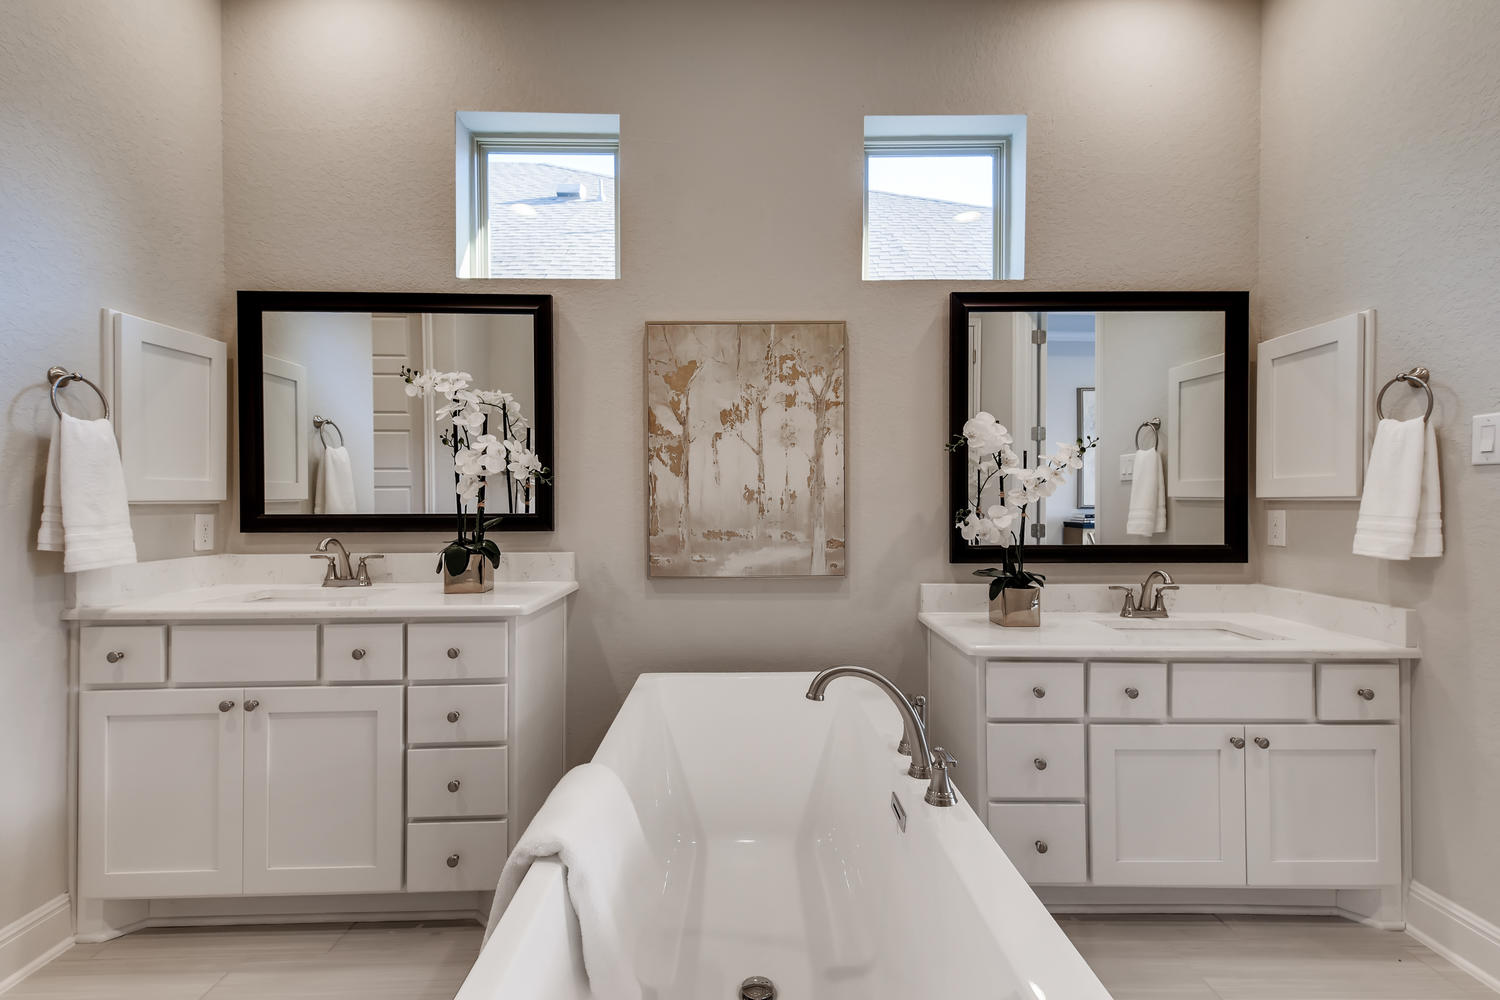 Full home staging in Las Vegas, Nevada, featuring a staged master bathroom